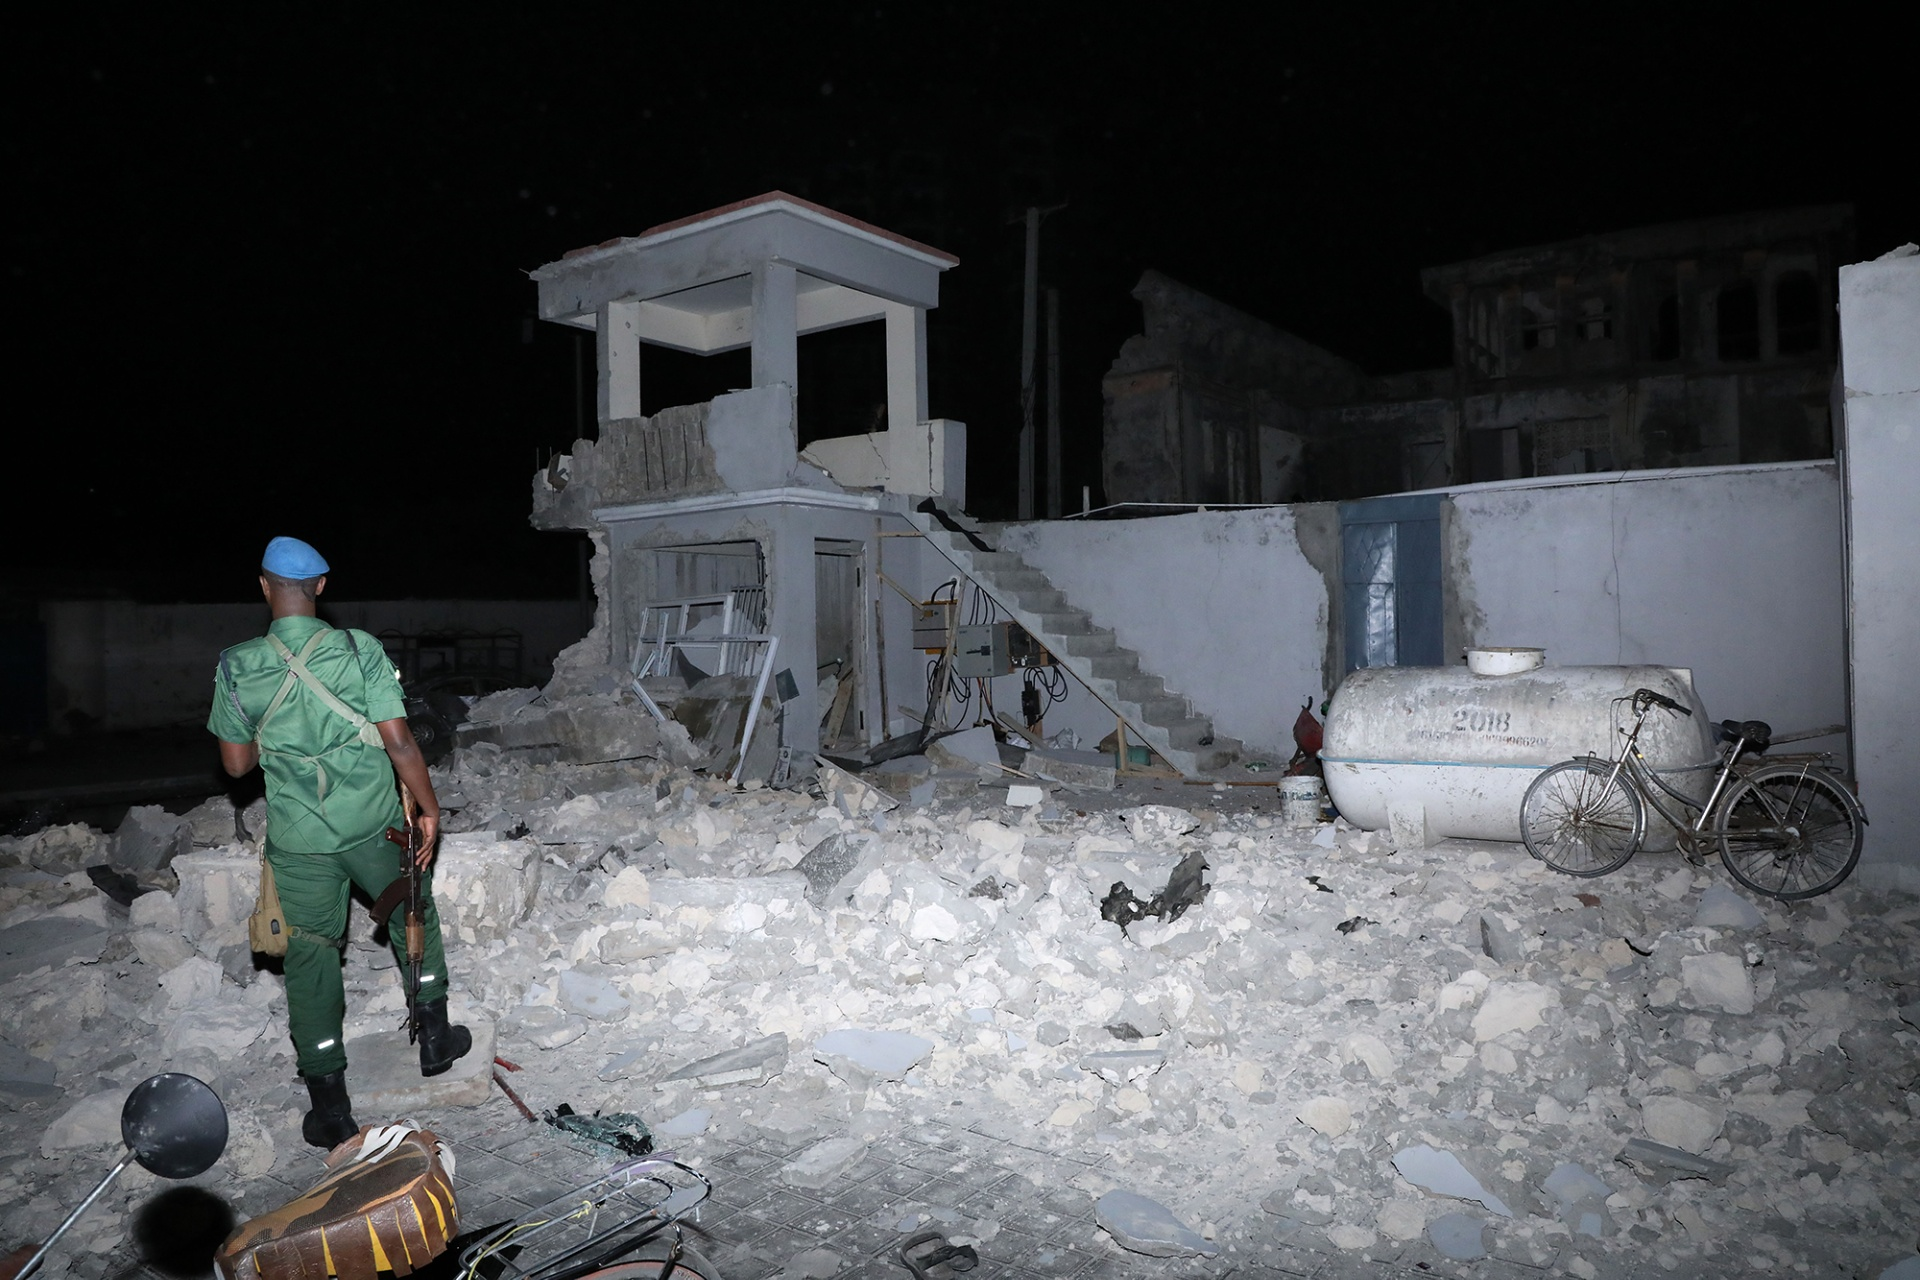 Damage after a bombing and attack at the Elite hotel in Mogadishu, Somalia, on Aug. 16.